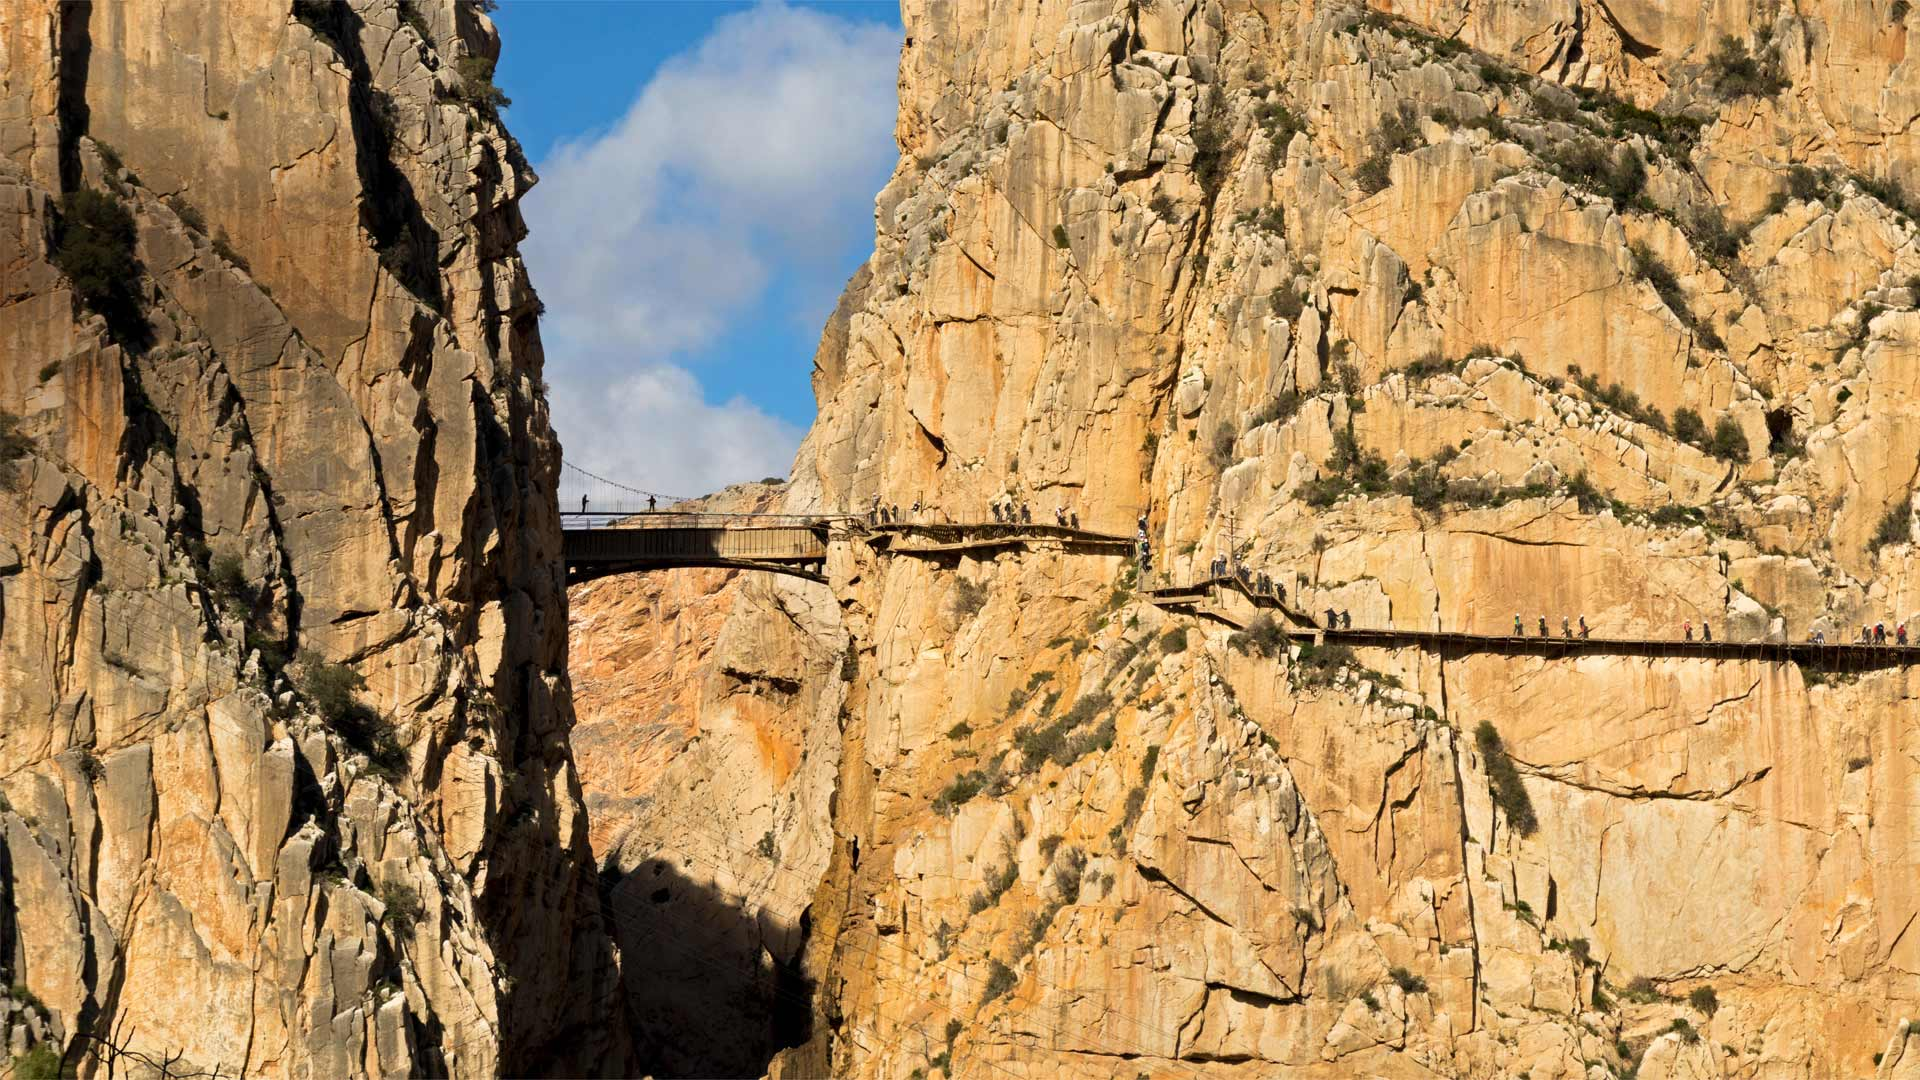 Visitors on El Caminito del Rey in the province of Málaga, Spain (© Ken Welsh/Alamy)(Bing United States)